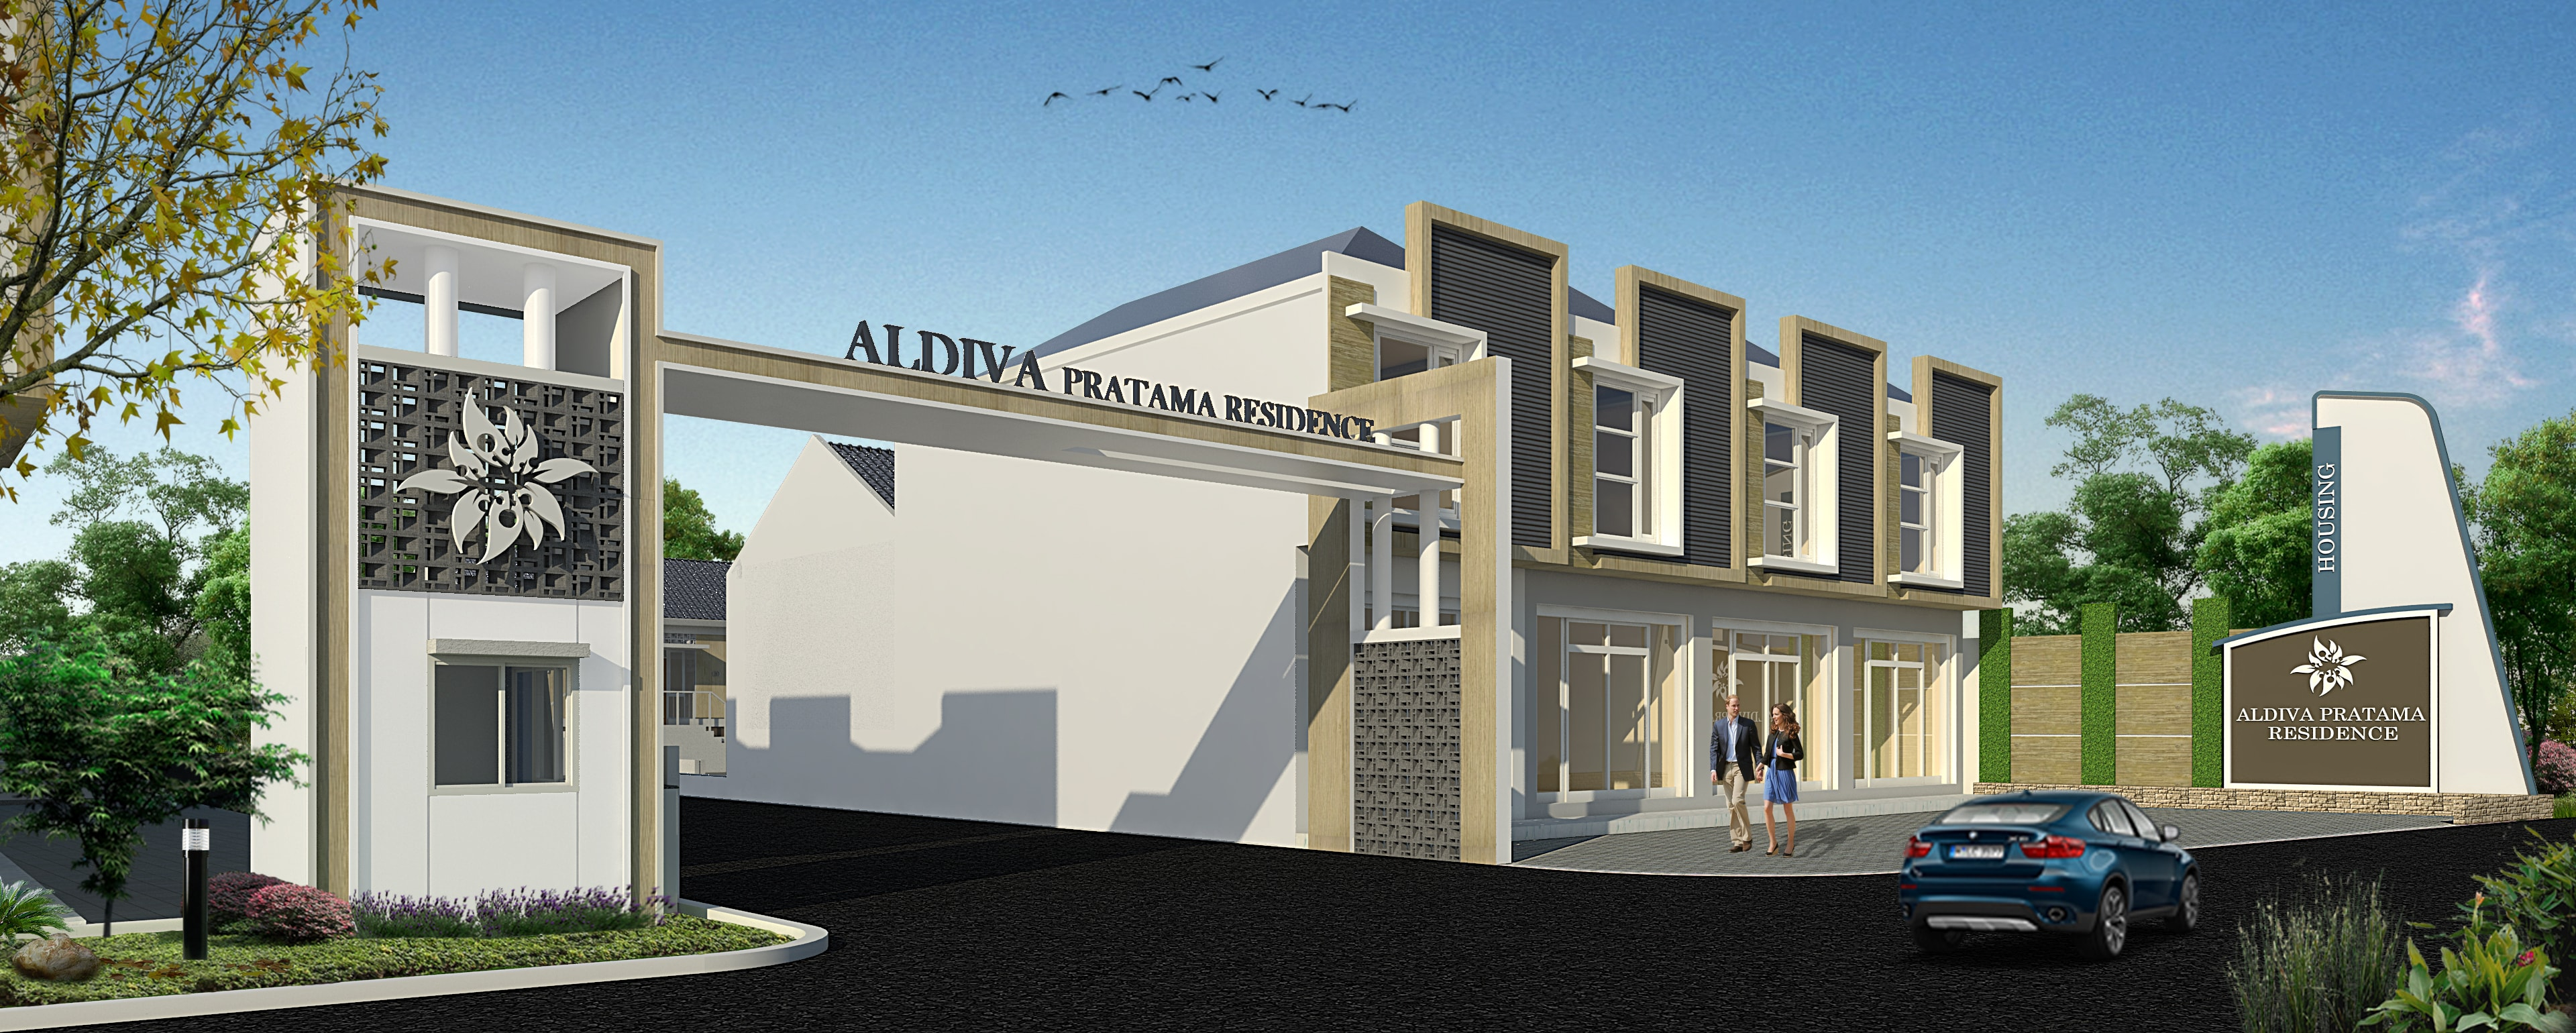 NEW PROJECT - ALDIVA PRATAMA RESIDENCE